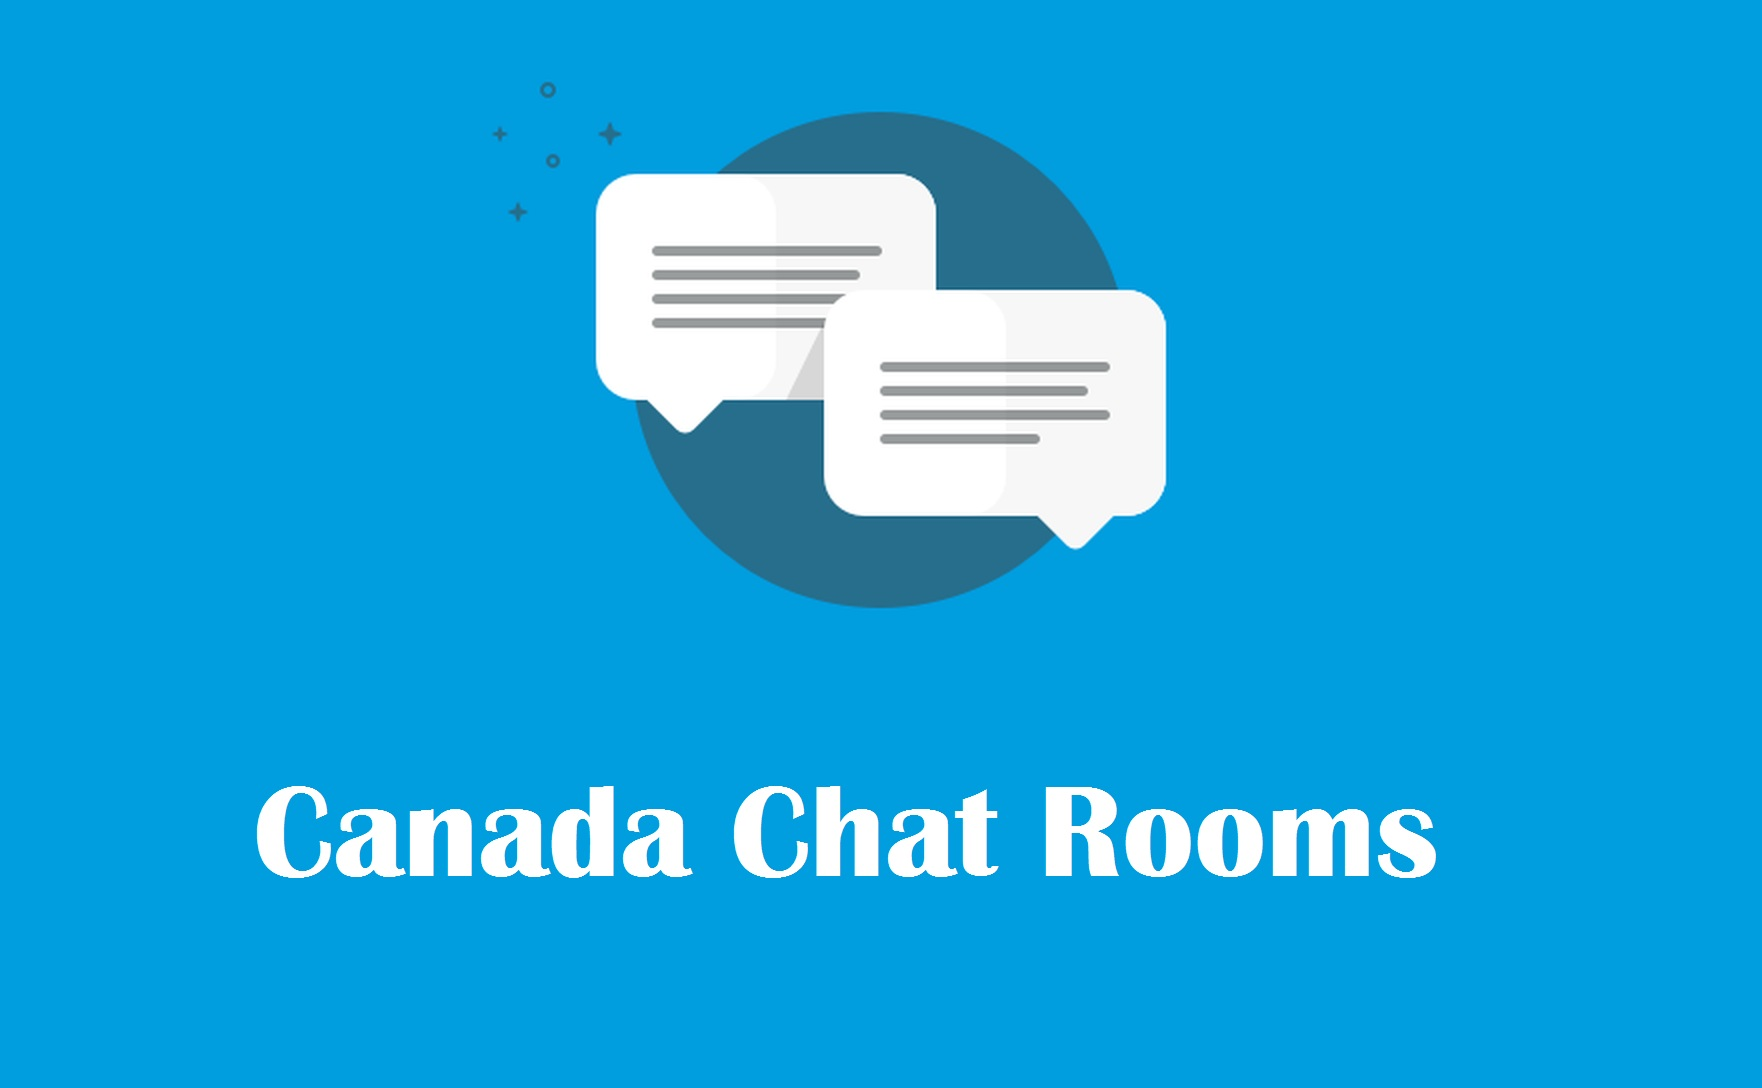 Canada Chat Rooms